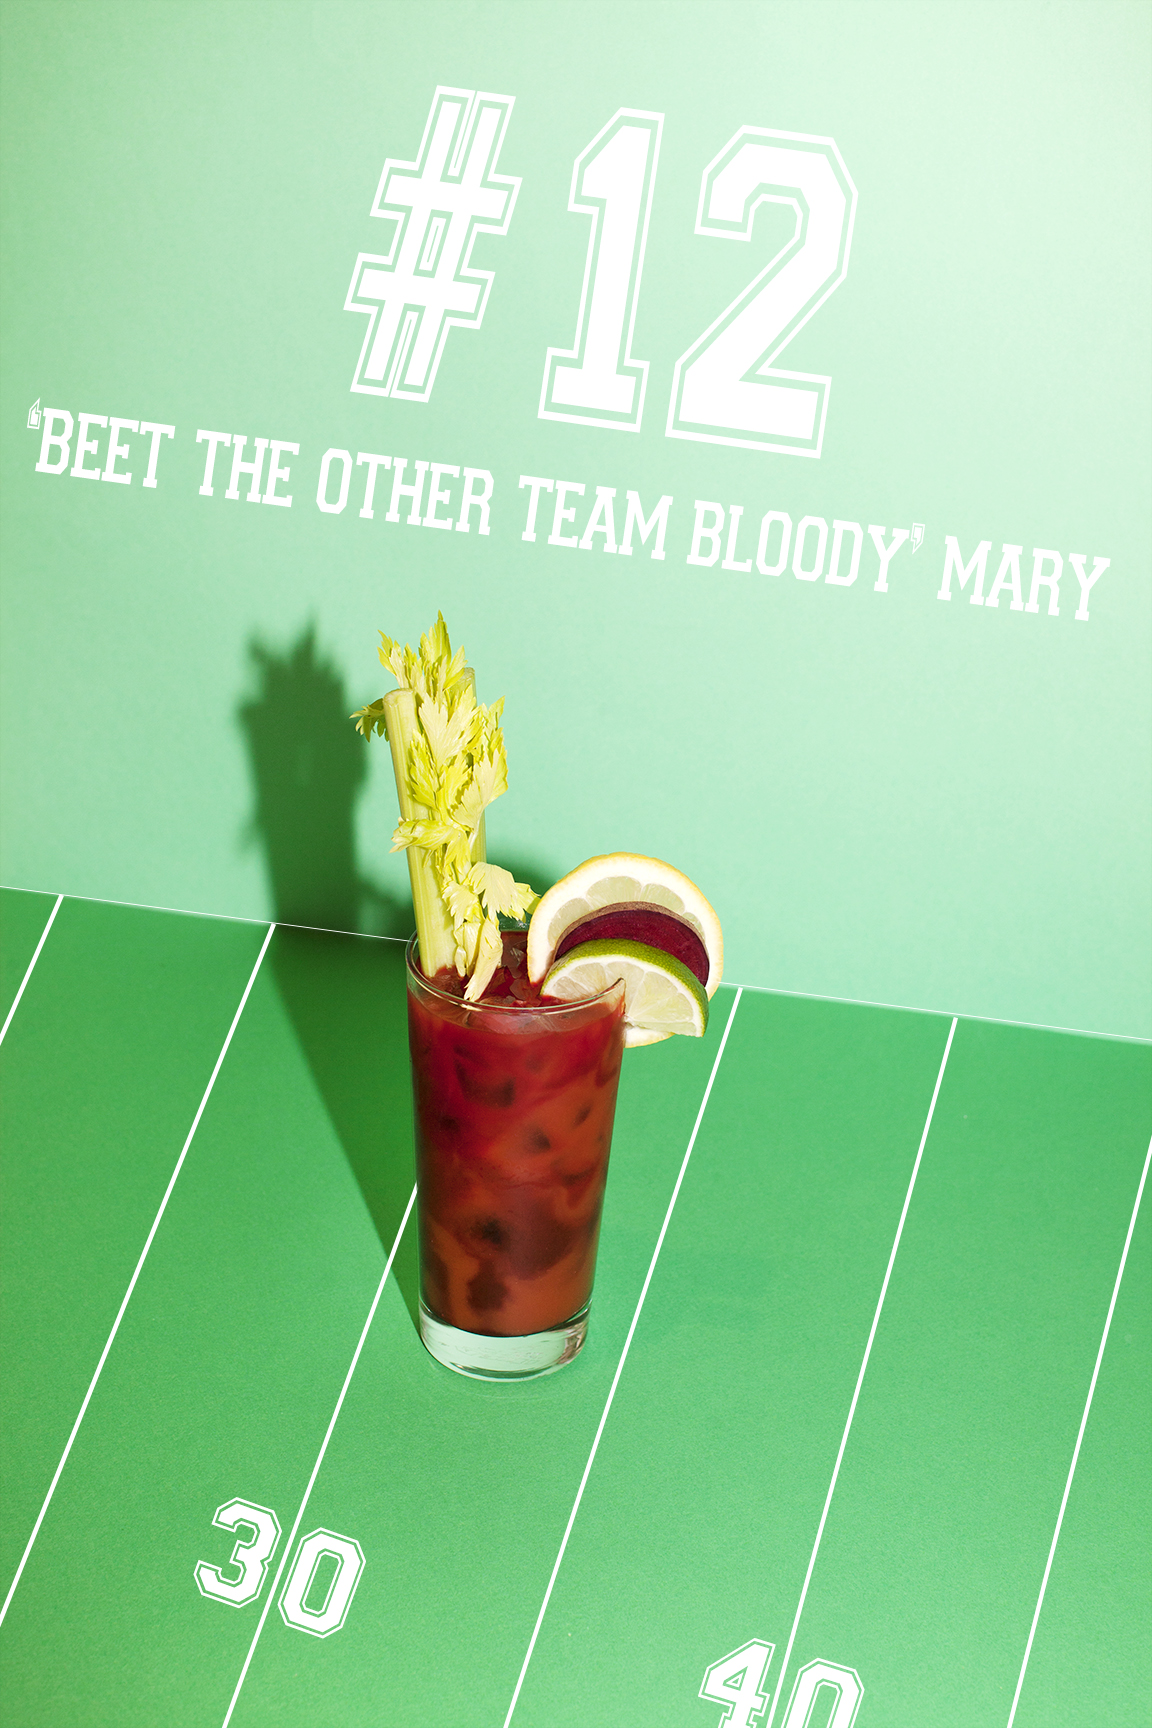 superbowl_recipe_bloody_mary